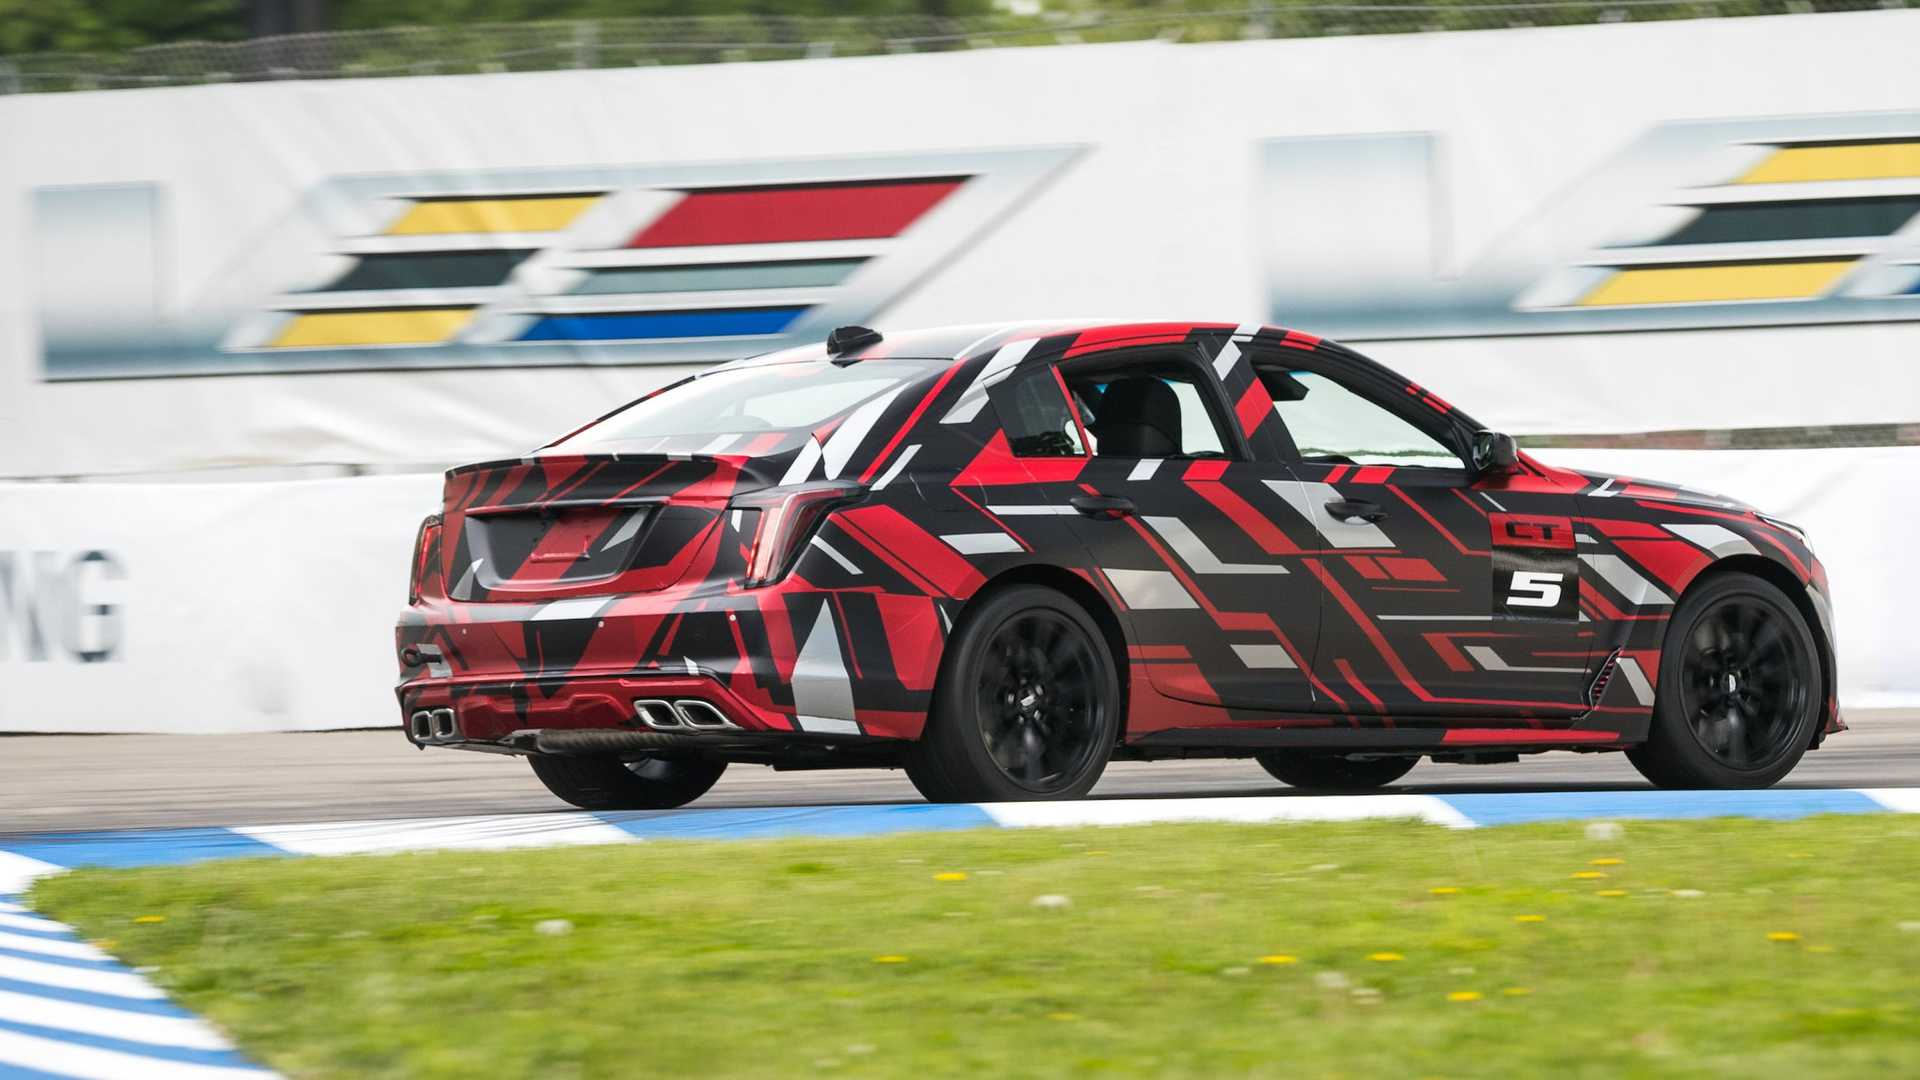 cadillac-two-new-v-series-prototypes (5).jpg